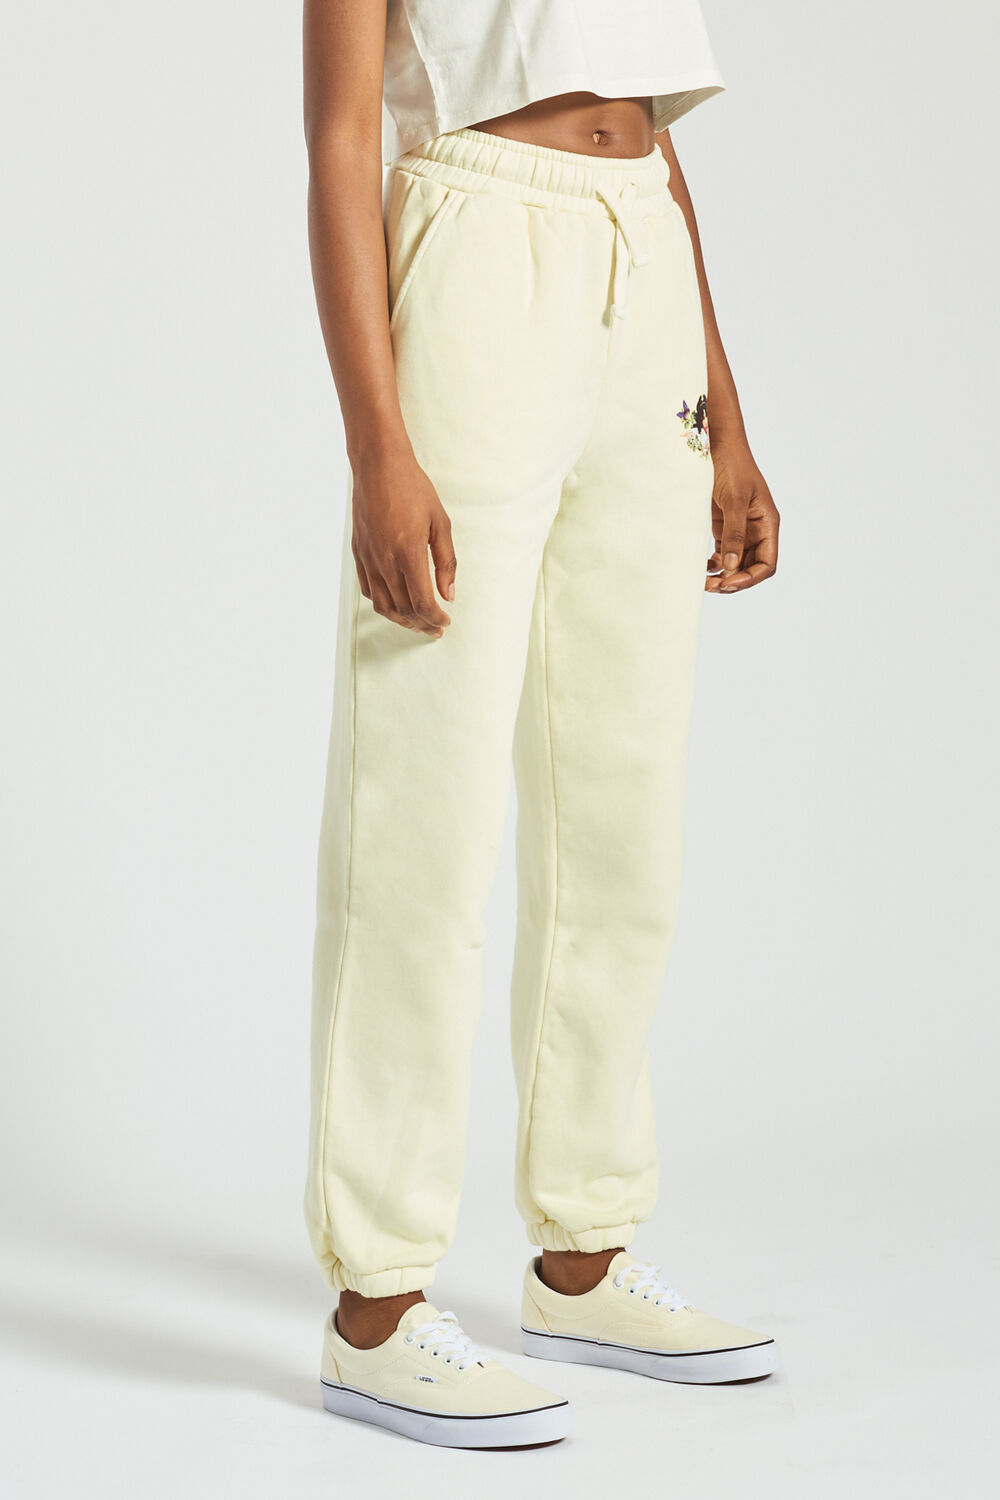 Woodland Angels Patch Jogger Pale Yellow